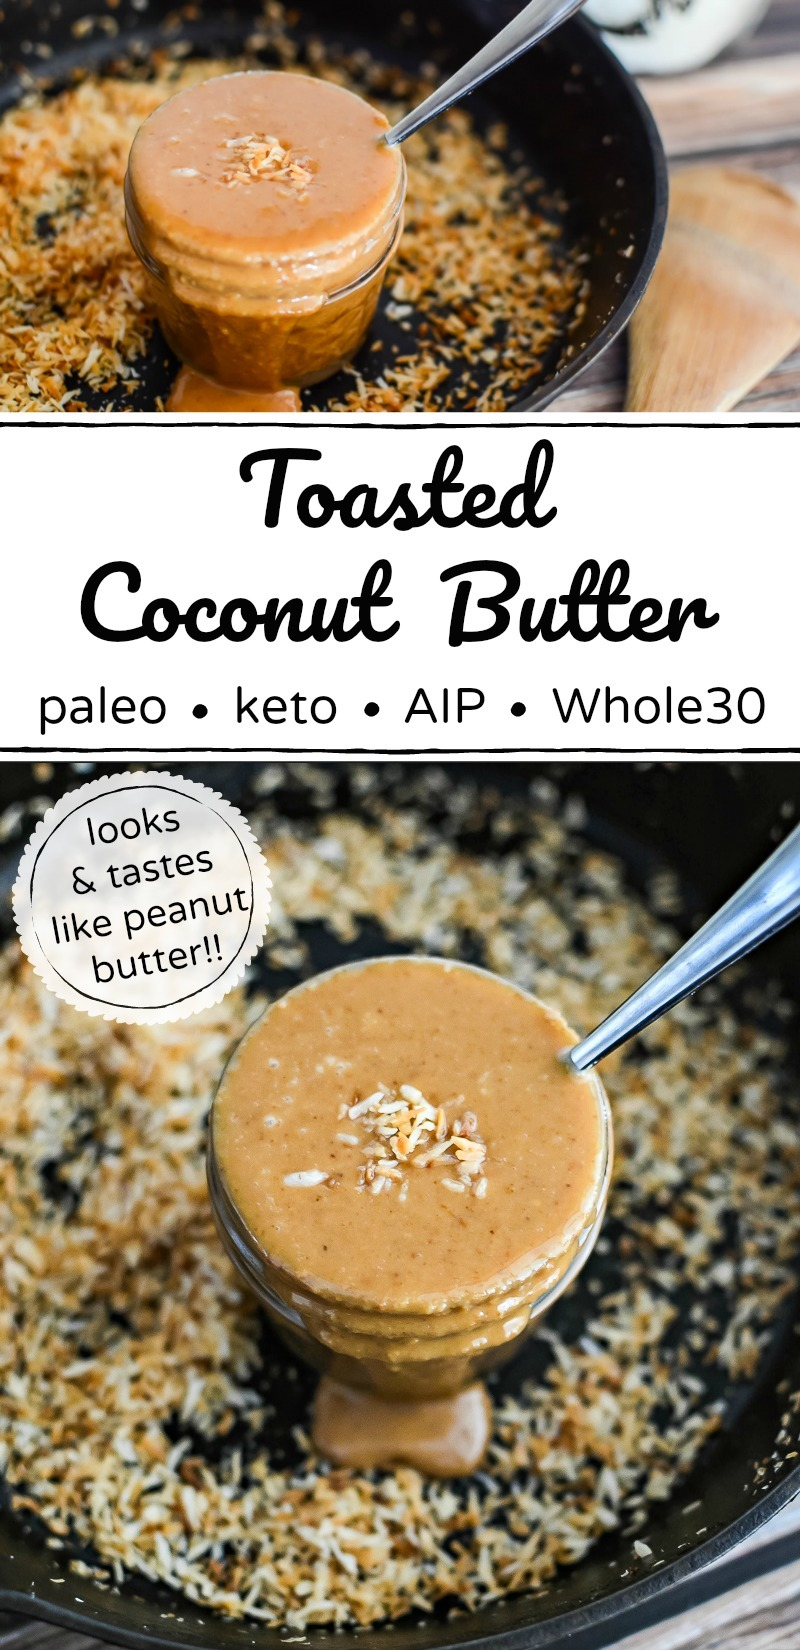 toasted coconut butter in cast iron skillet with text overlay